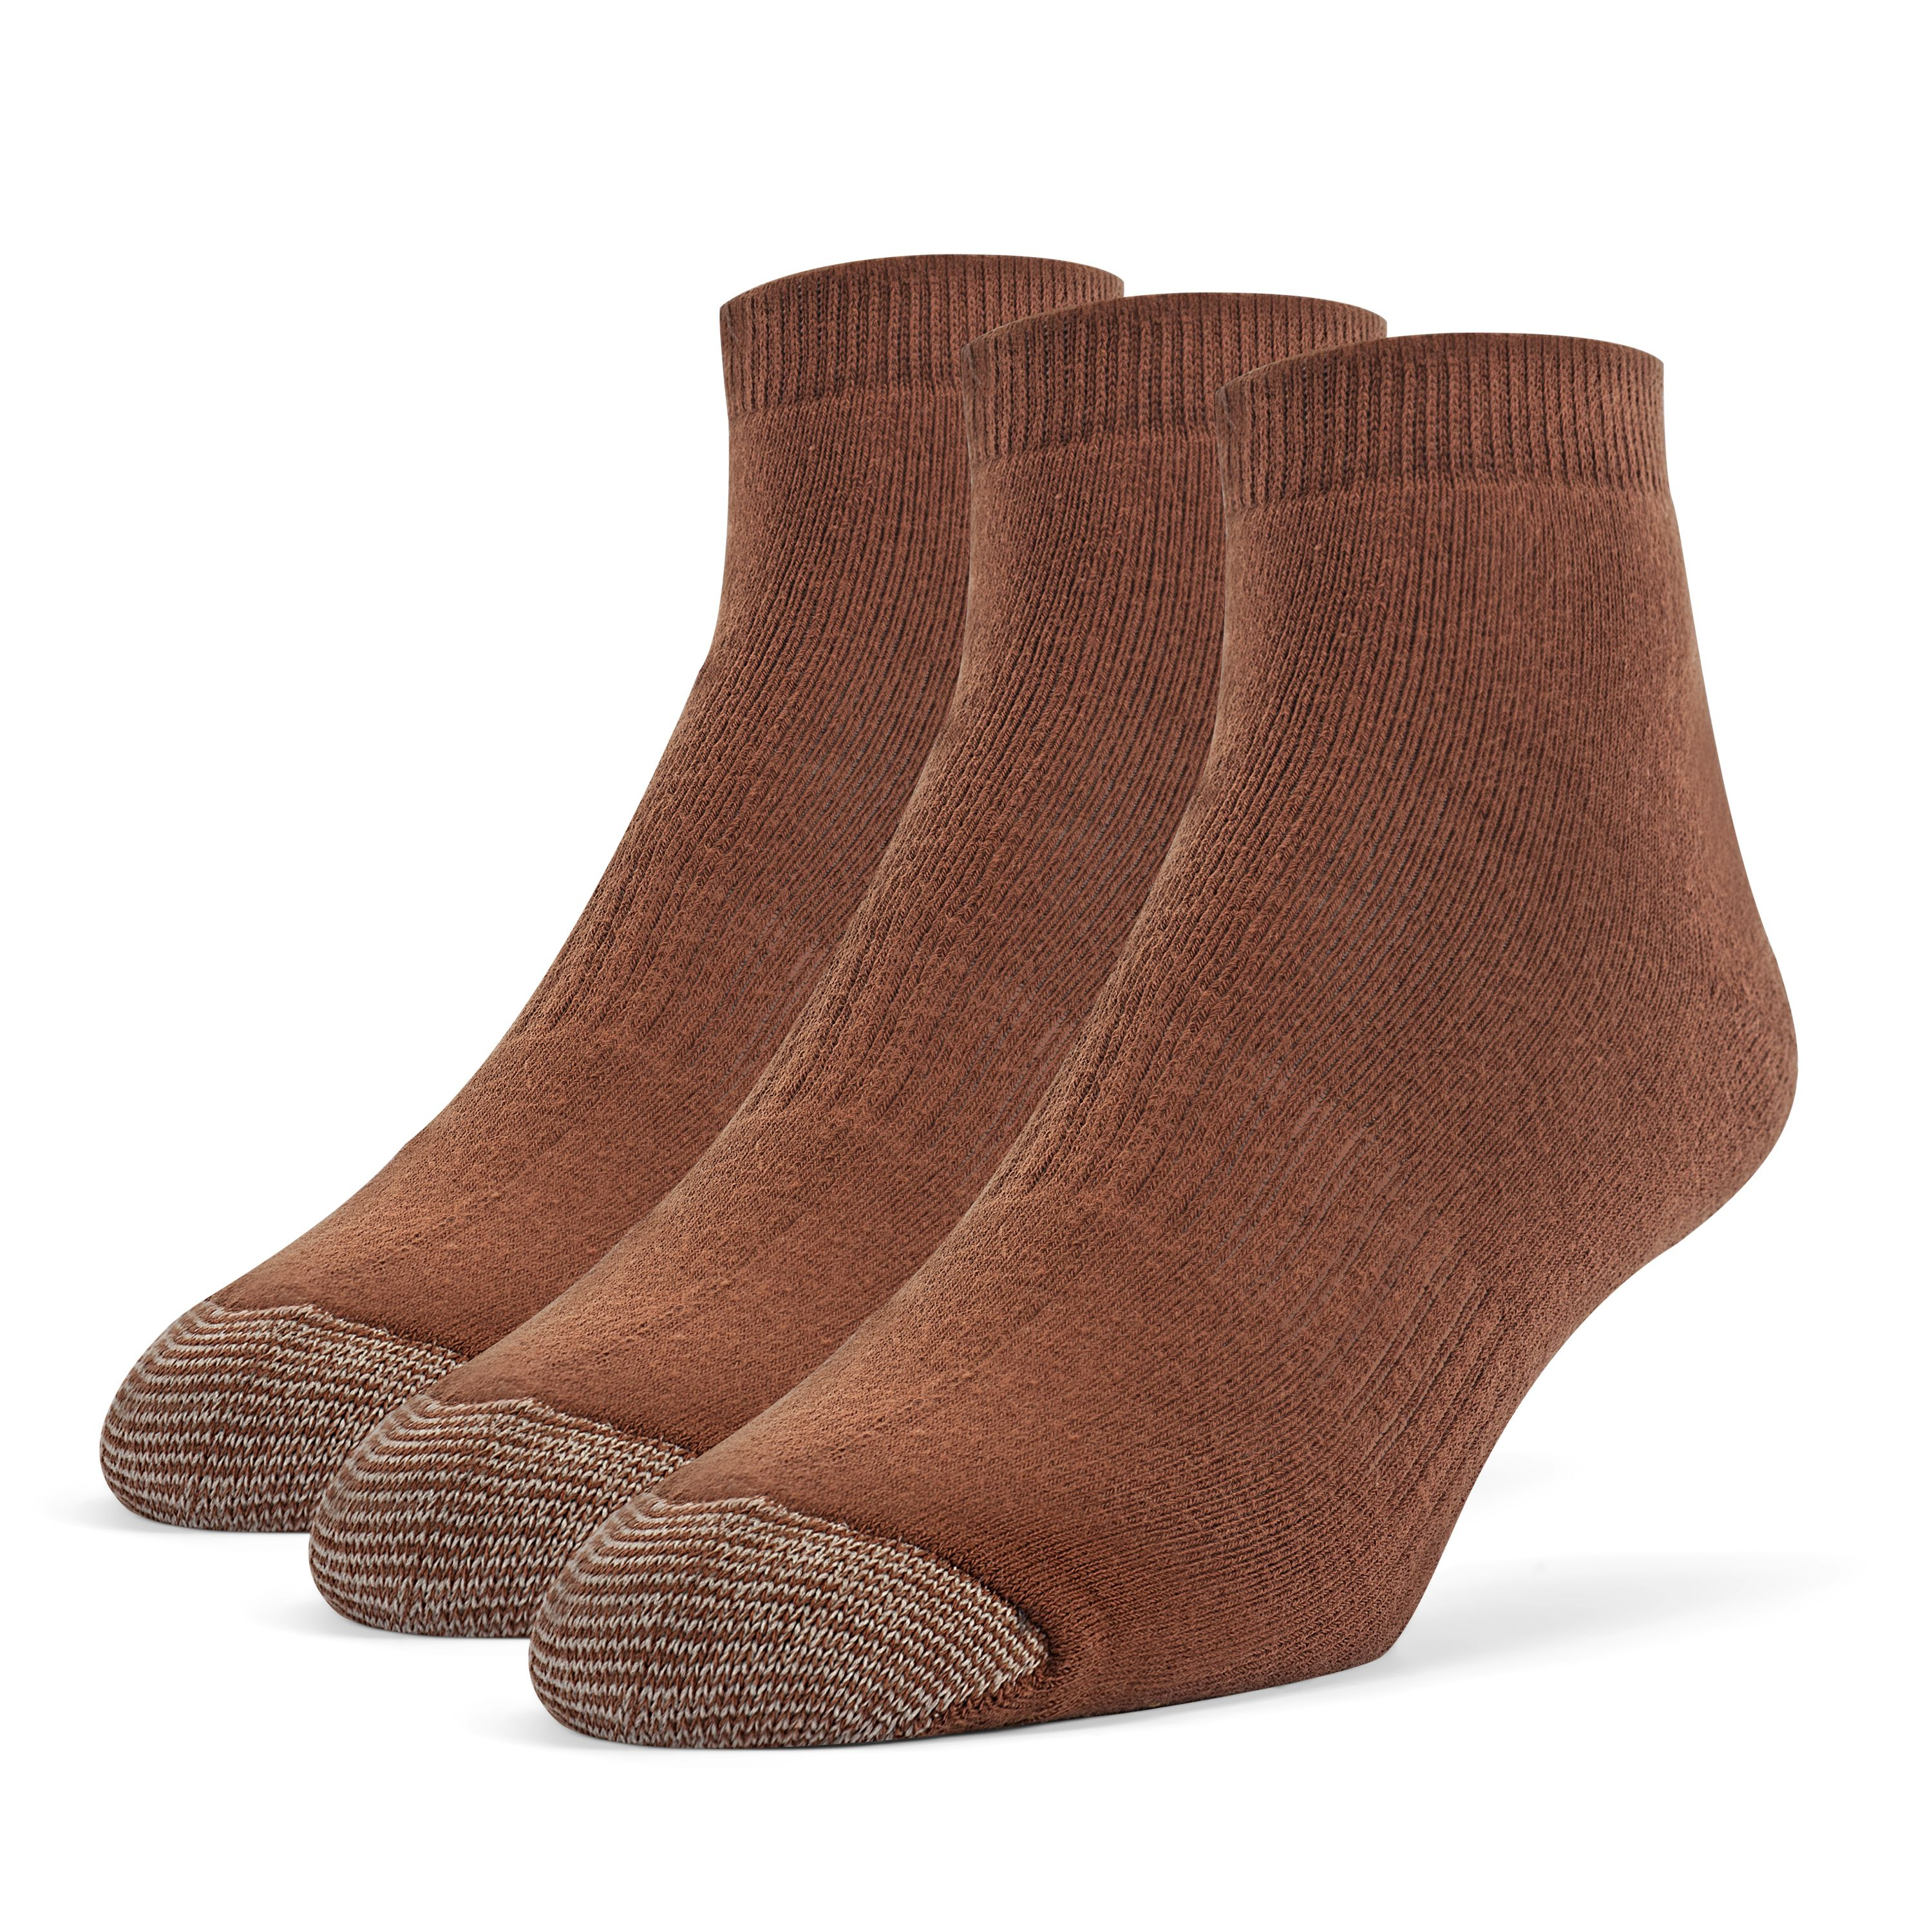 Women's Cotton Extra Soft Ankle Cushion Socks - 3 Pairs